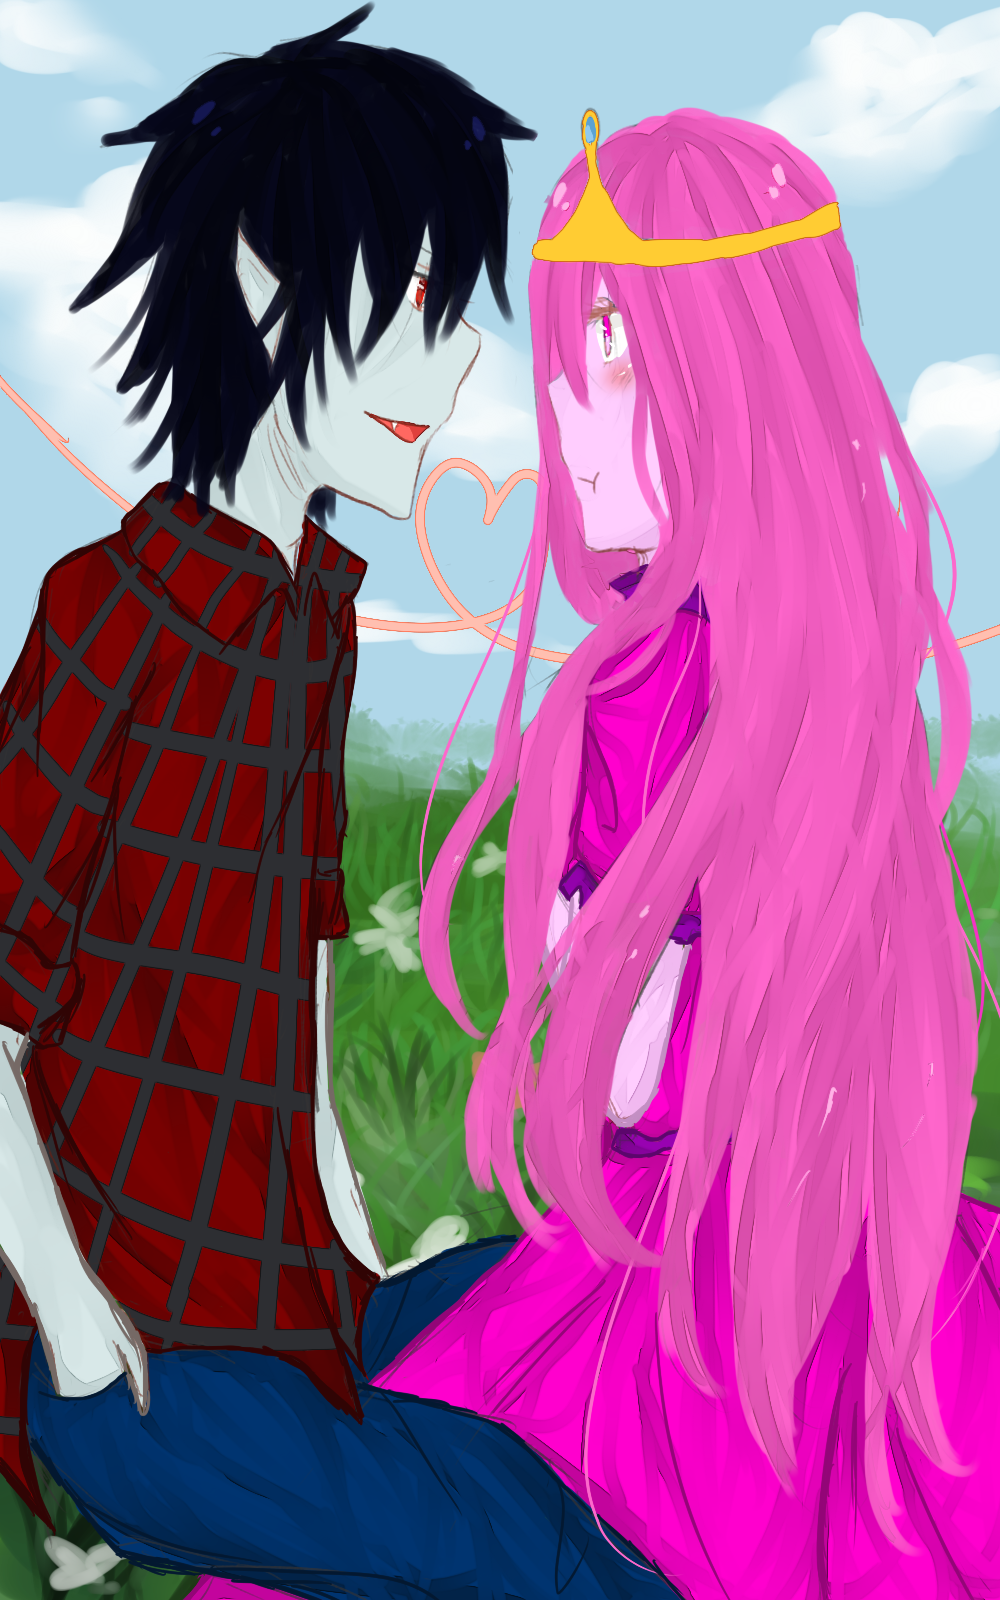 Princess Bubblegum and Marshall Lee by Claradeso on DeviantArt